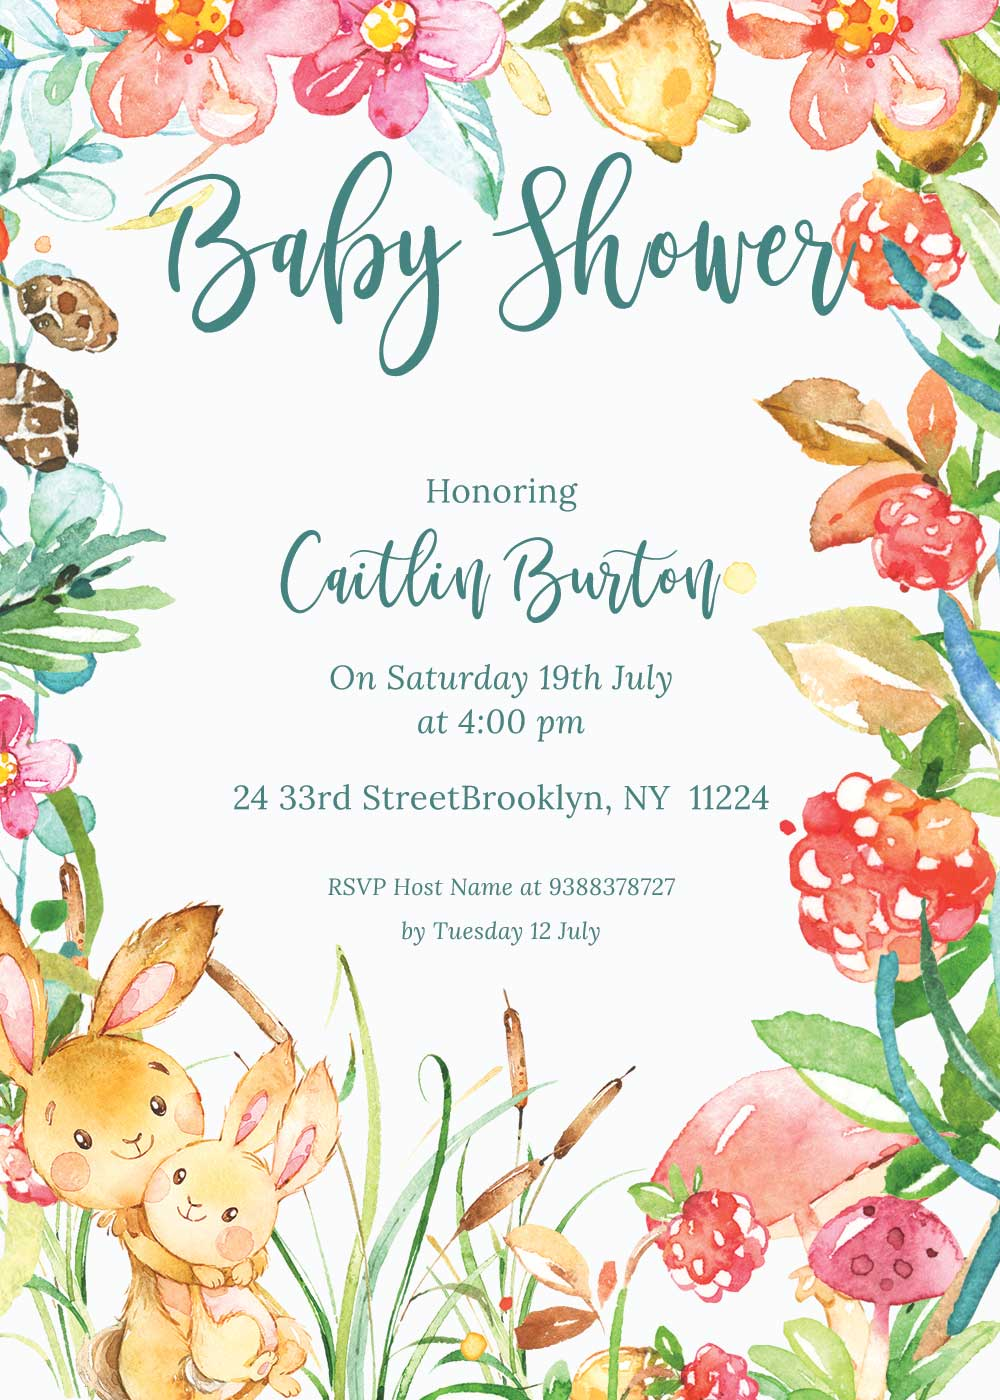 Baby shower invitations - Raspberry theme